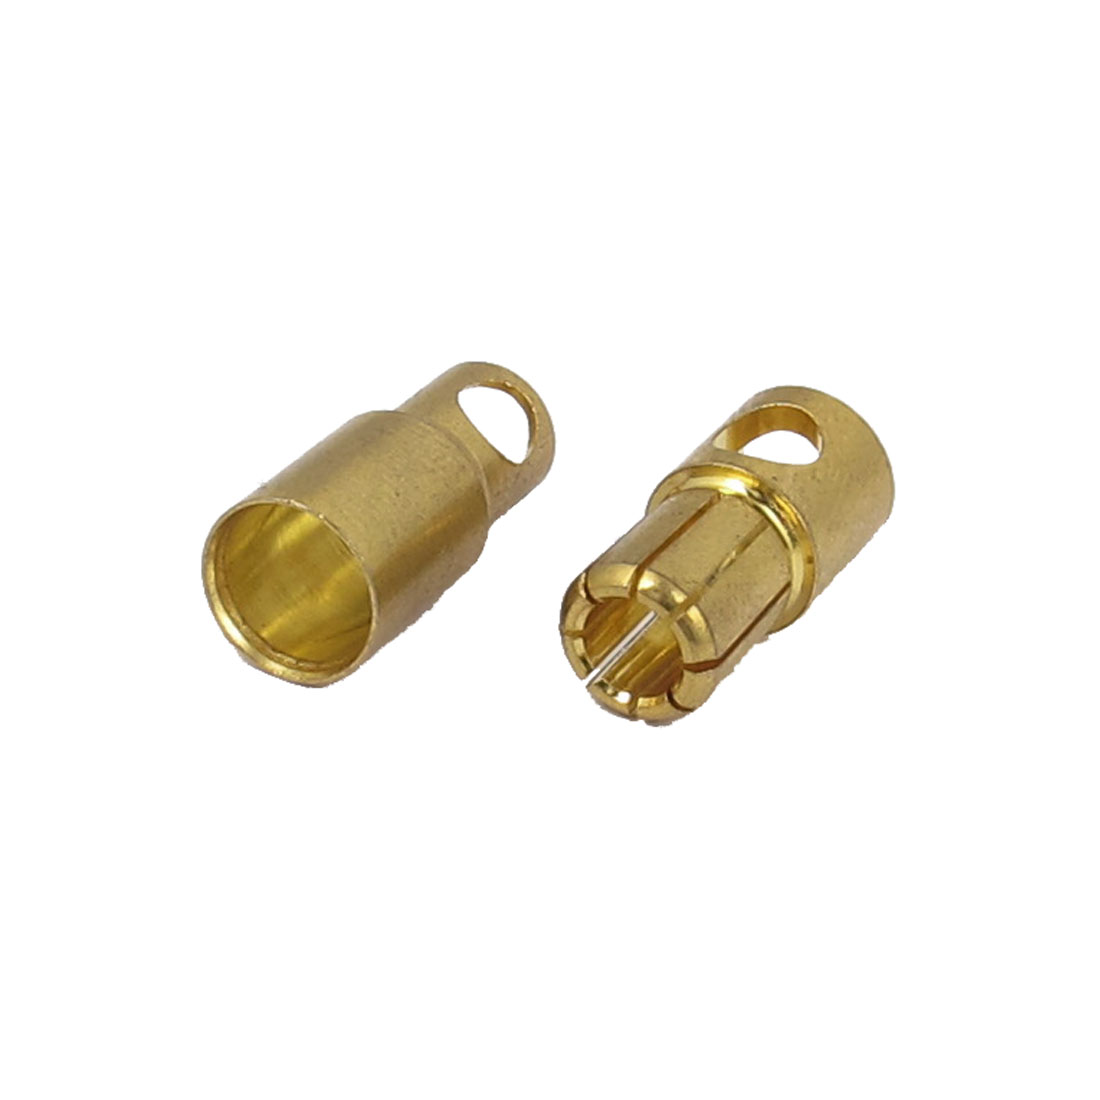 Pair 6mm Gold Tone Metal Banana Female Male Connector Adapter for RC Helicopter